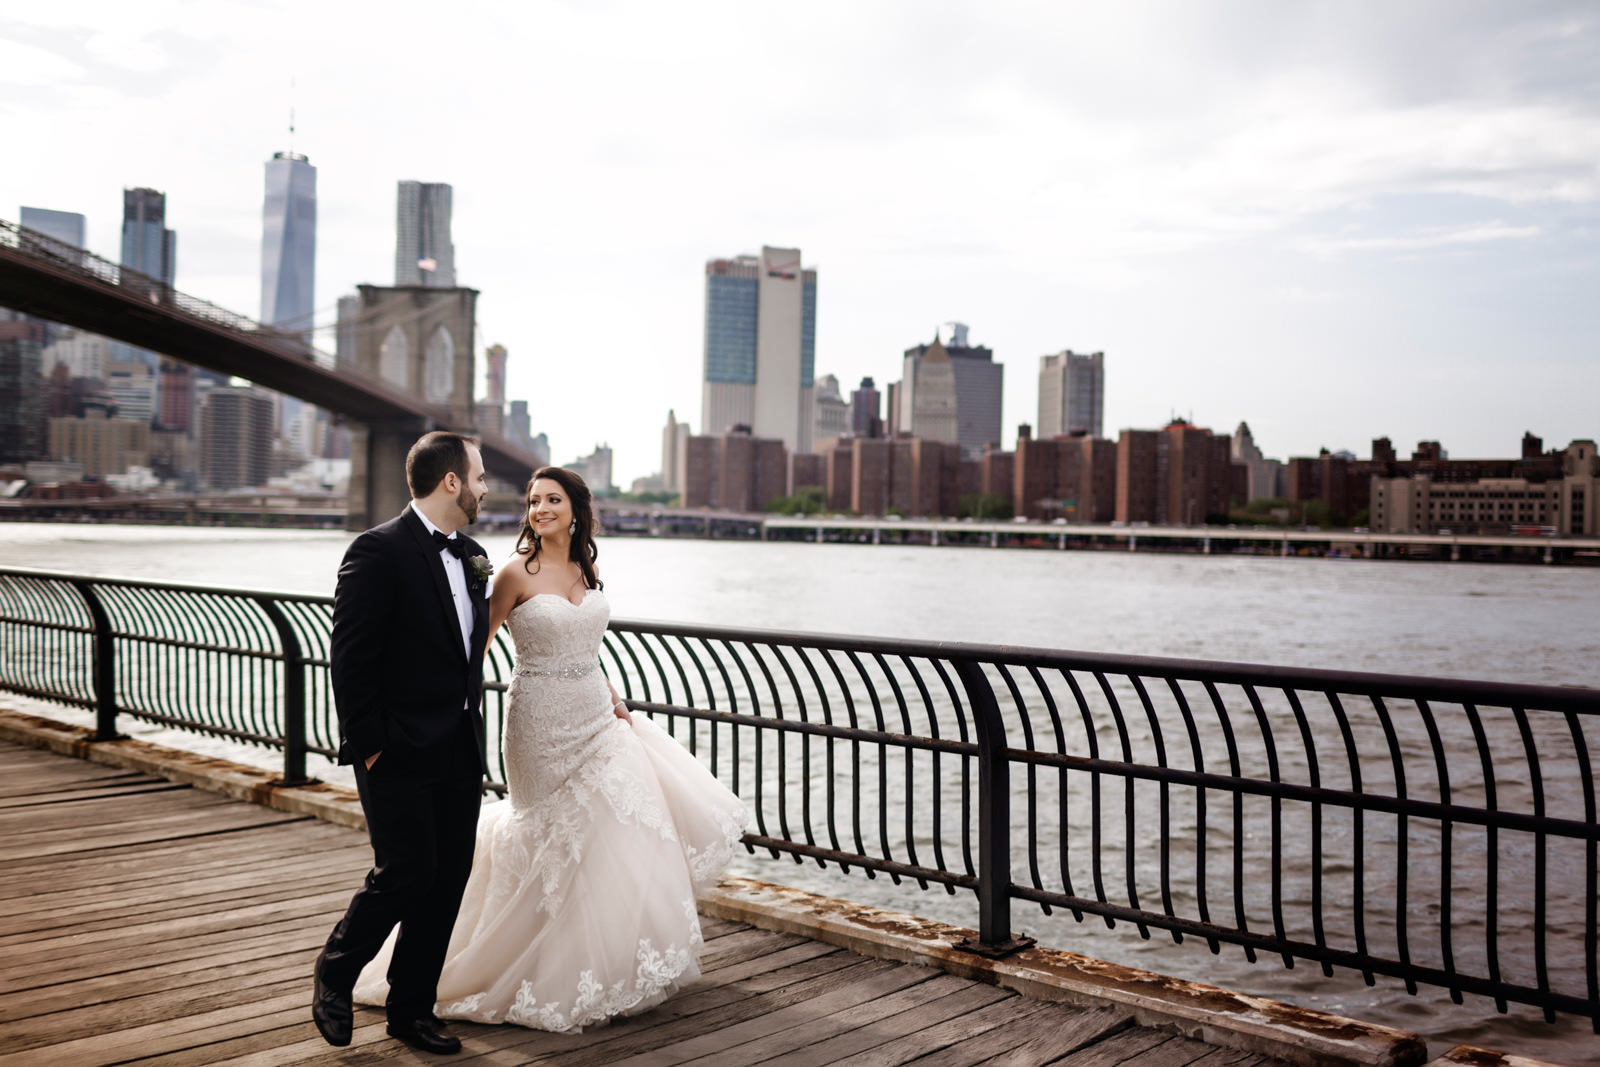 Wedding in New York City and bride and groom portraits in Dumbo, Brooklyn